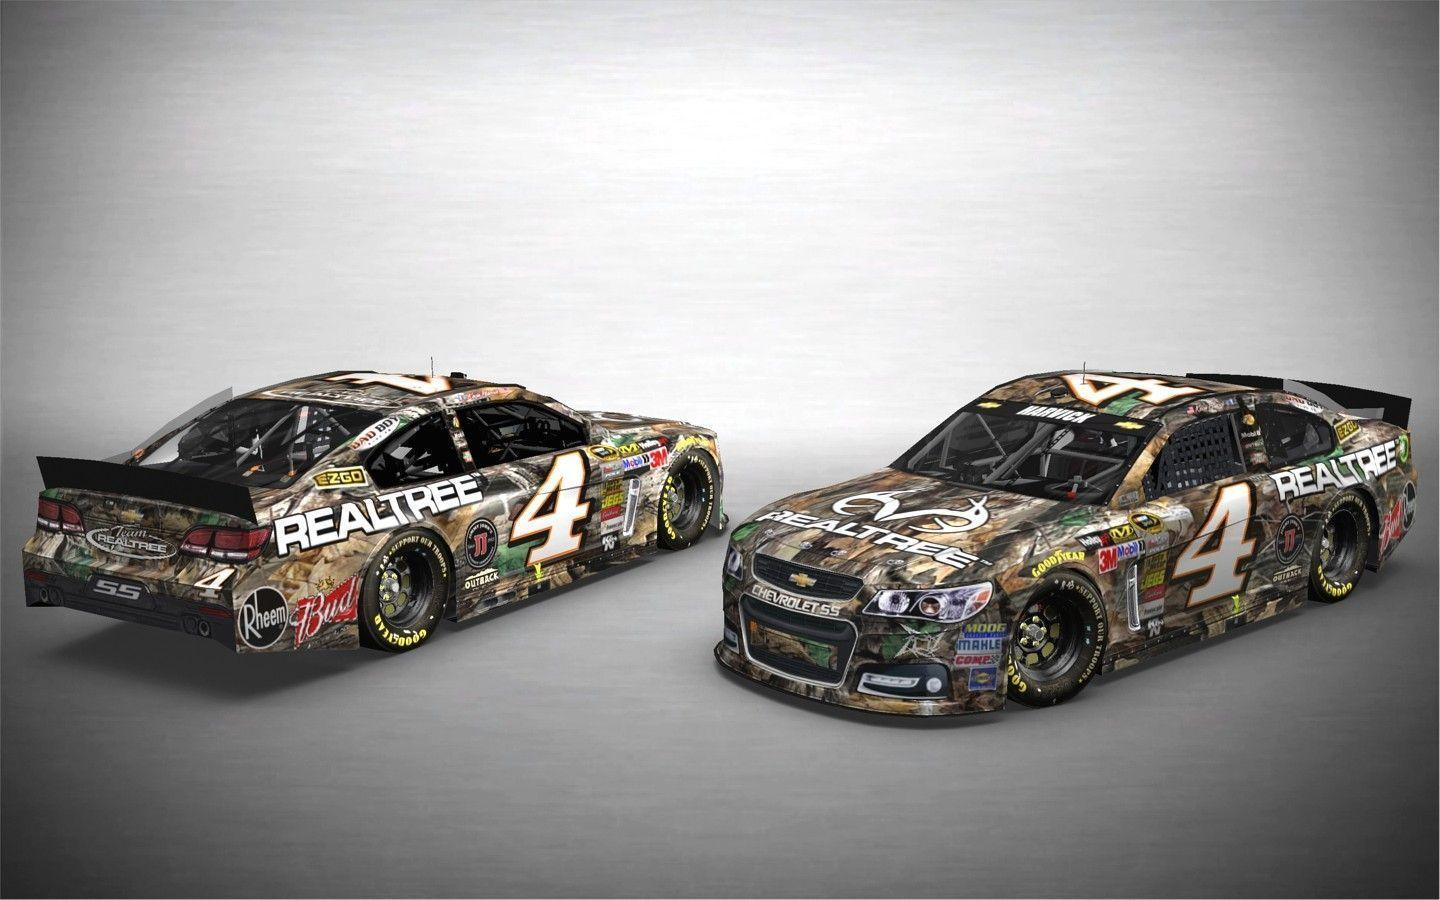 Kevin Harvick Wallpaper Number 4: Number 4 Wallpapers